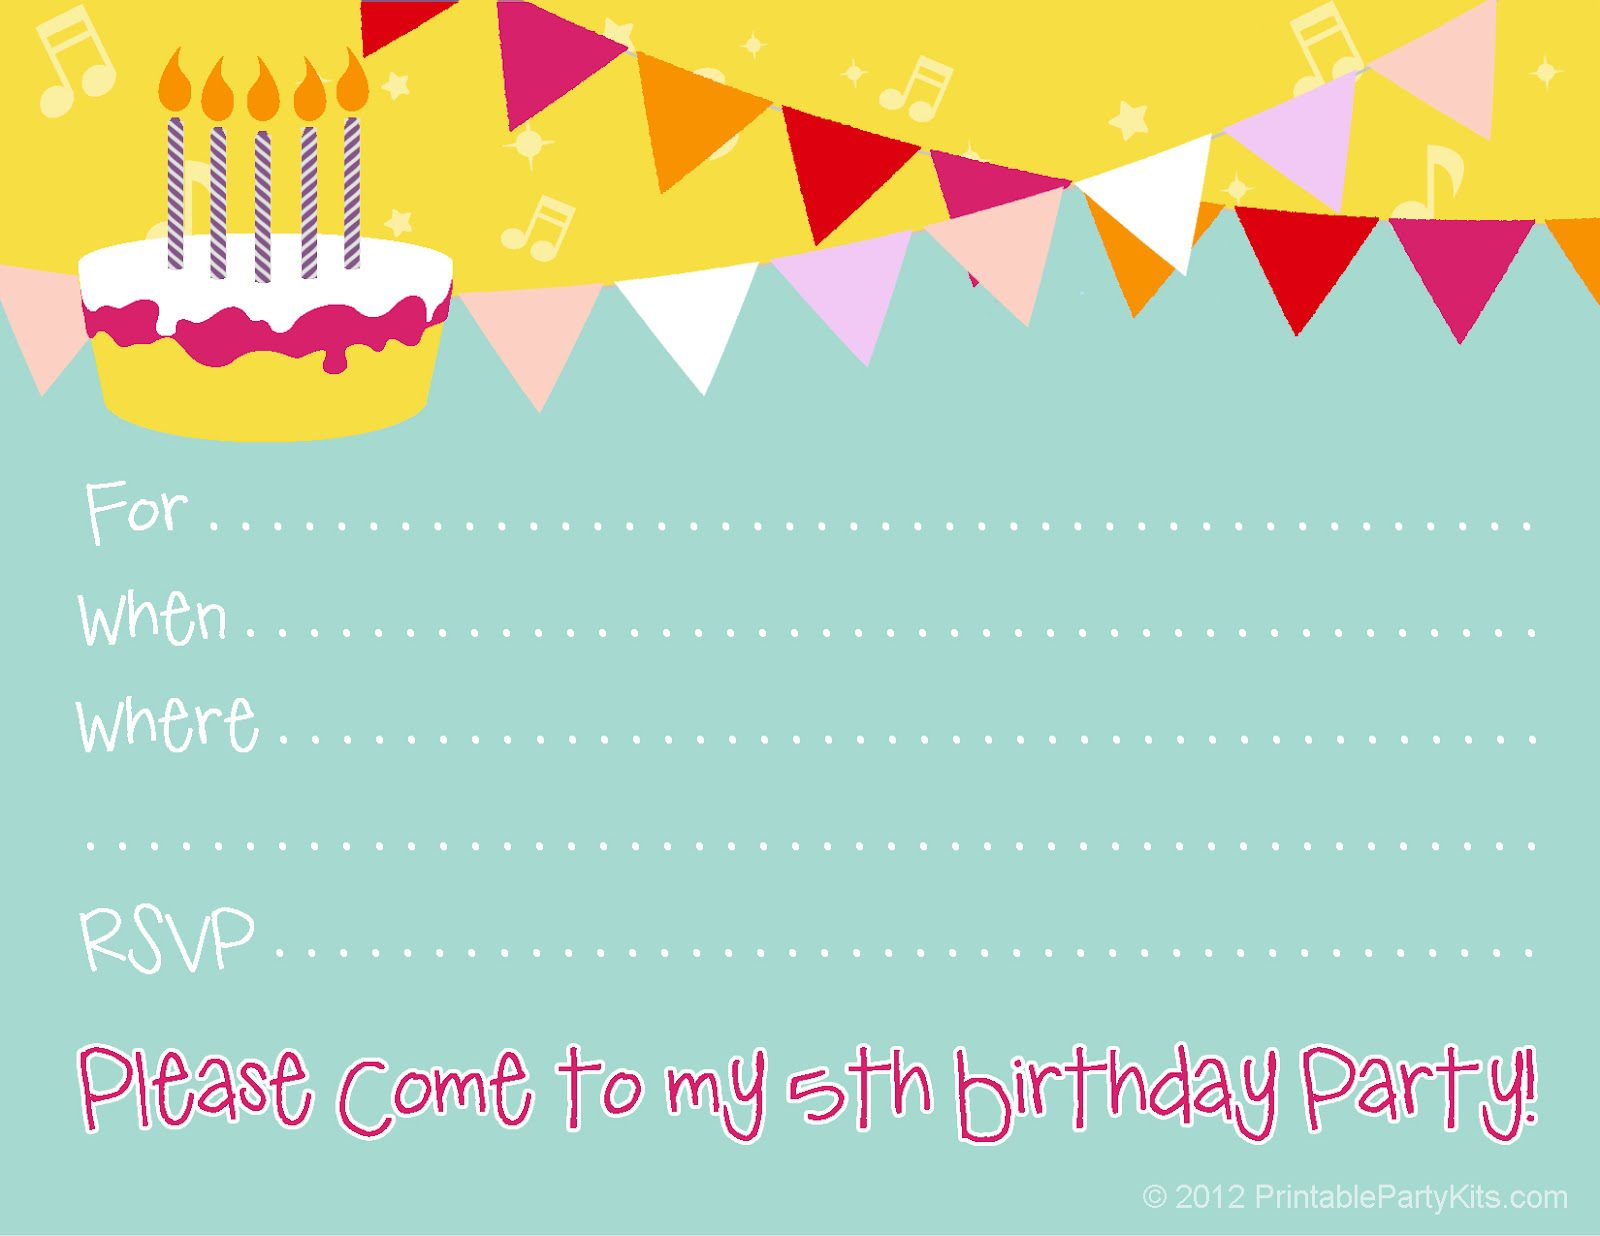 birthday party invitation template free online ; birthday-party-invitation-template-free-online